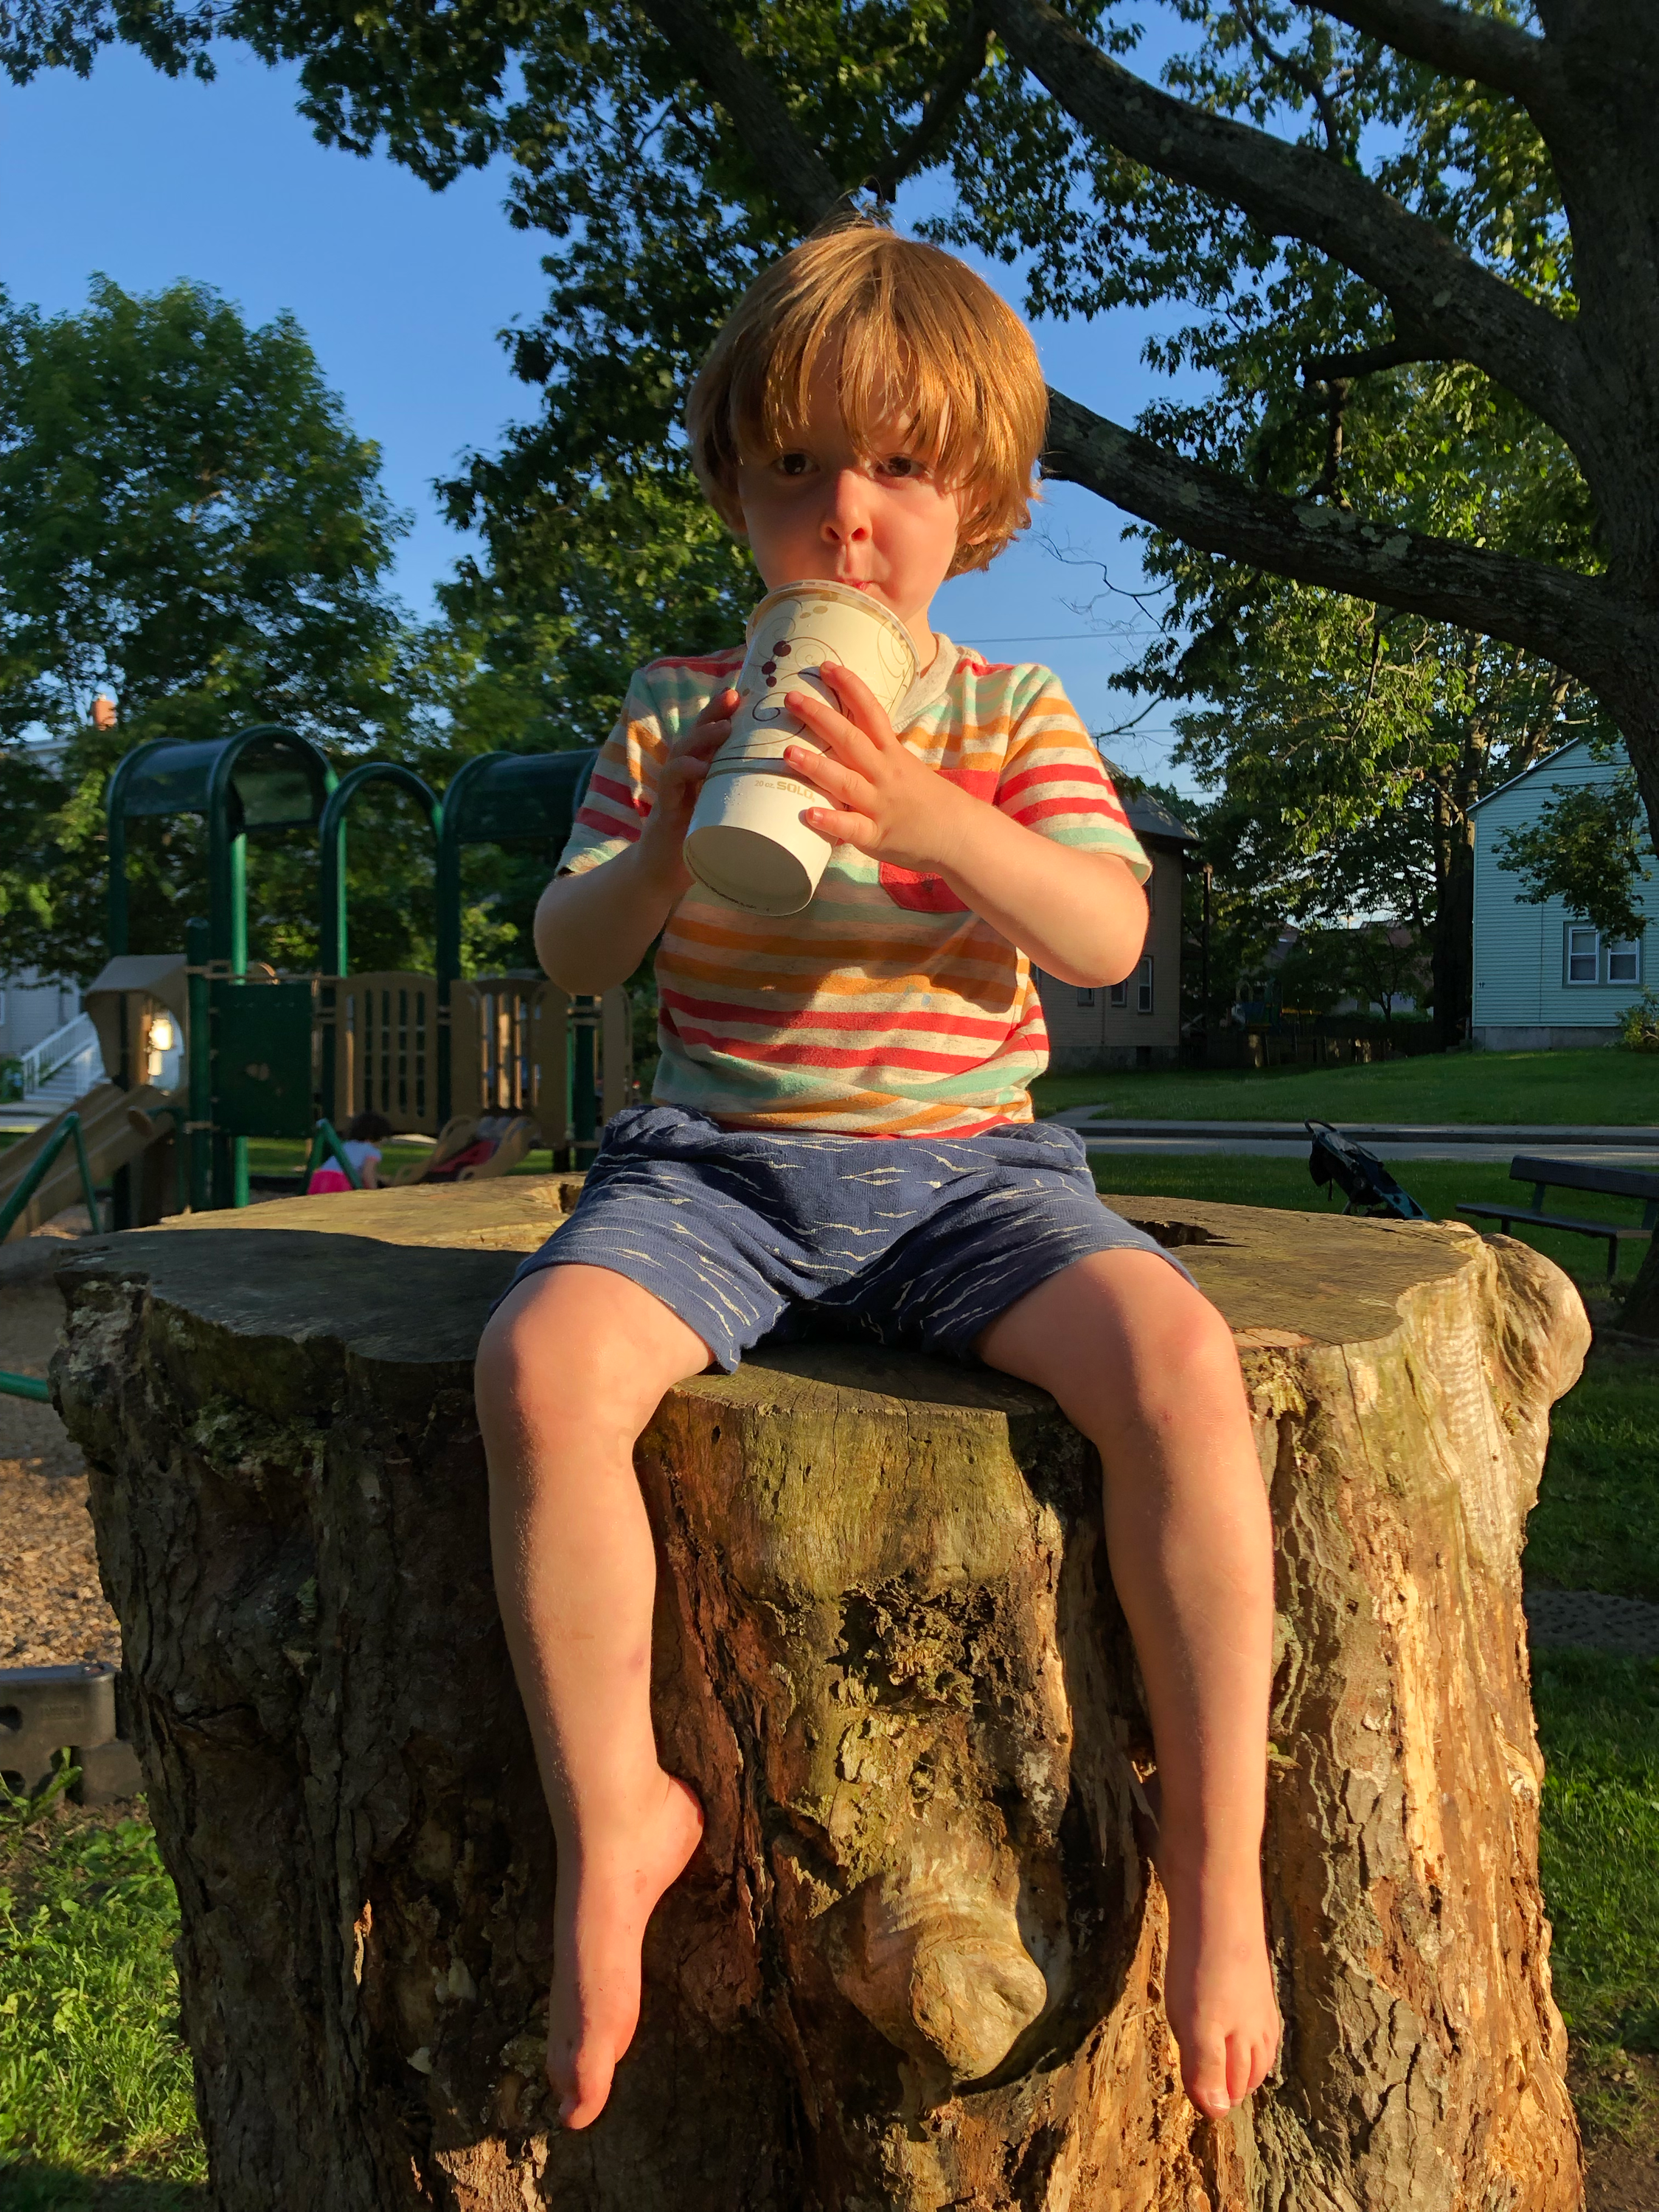 Kid in striped shirt sitting on a stump, drinking a chocolate milkshake from a paper cup.